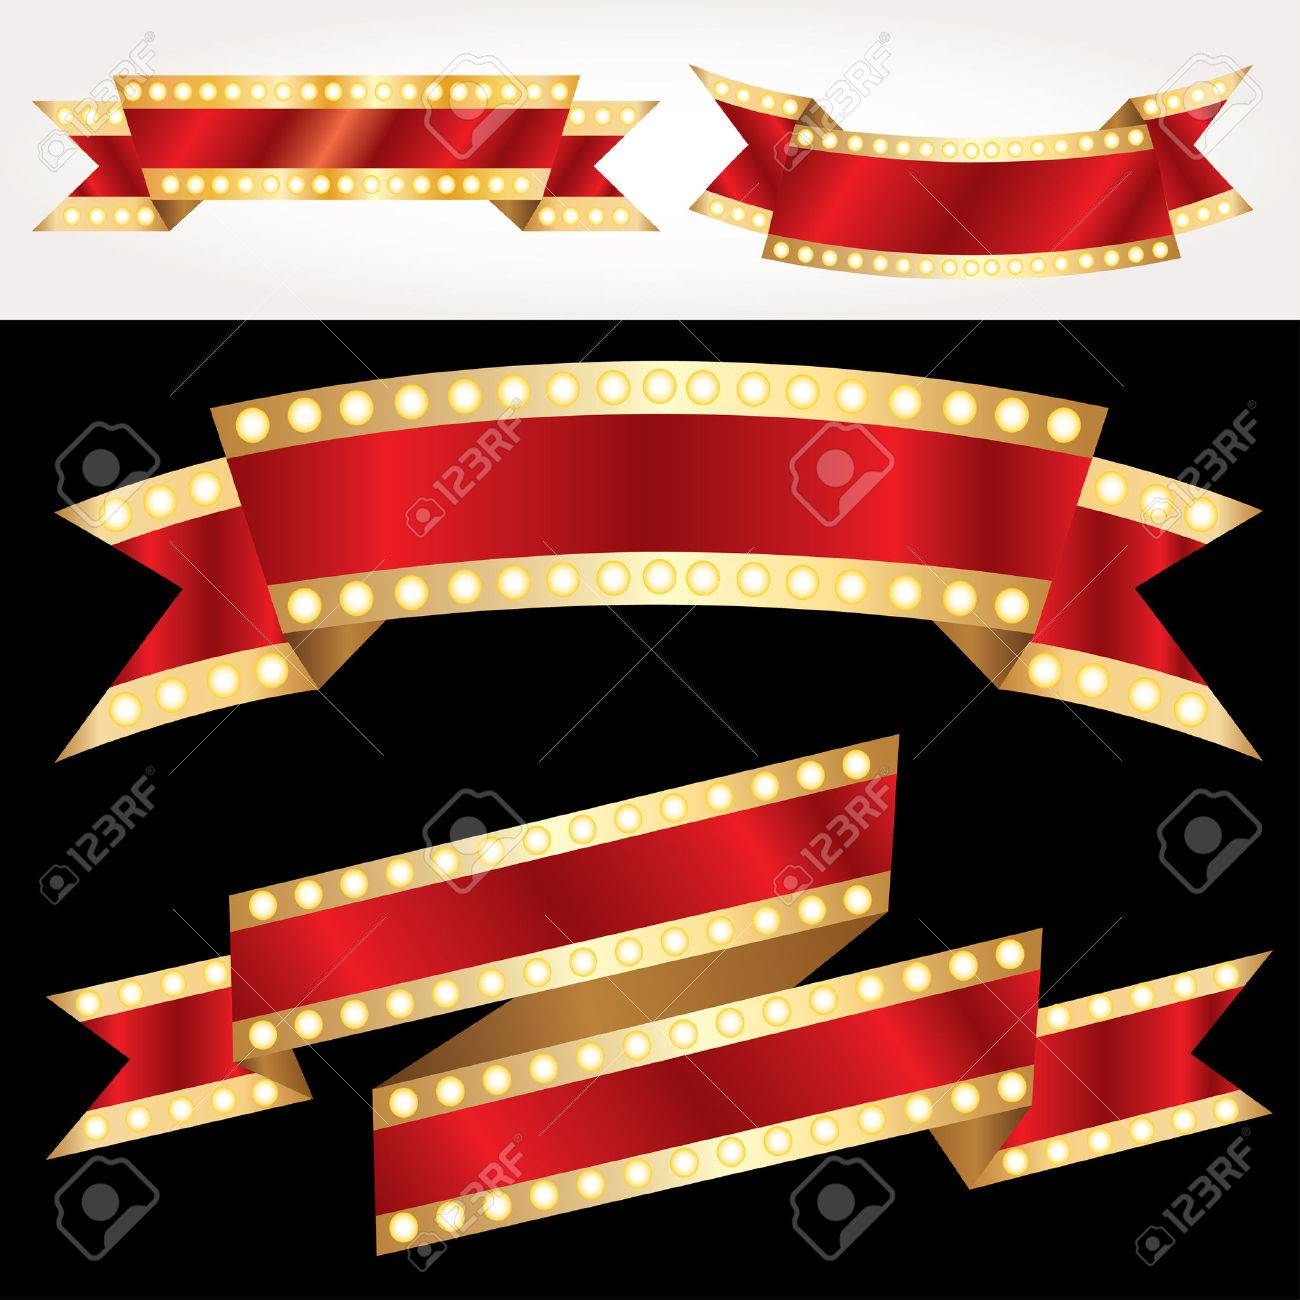 set of vector red show banners with bulb lamps - 30220459